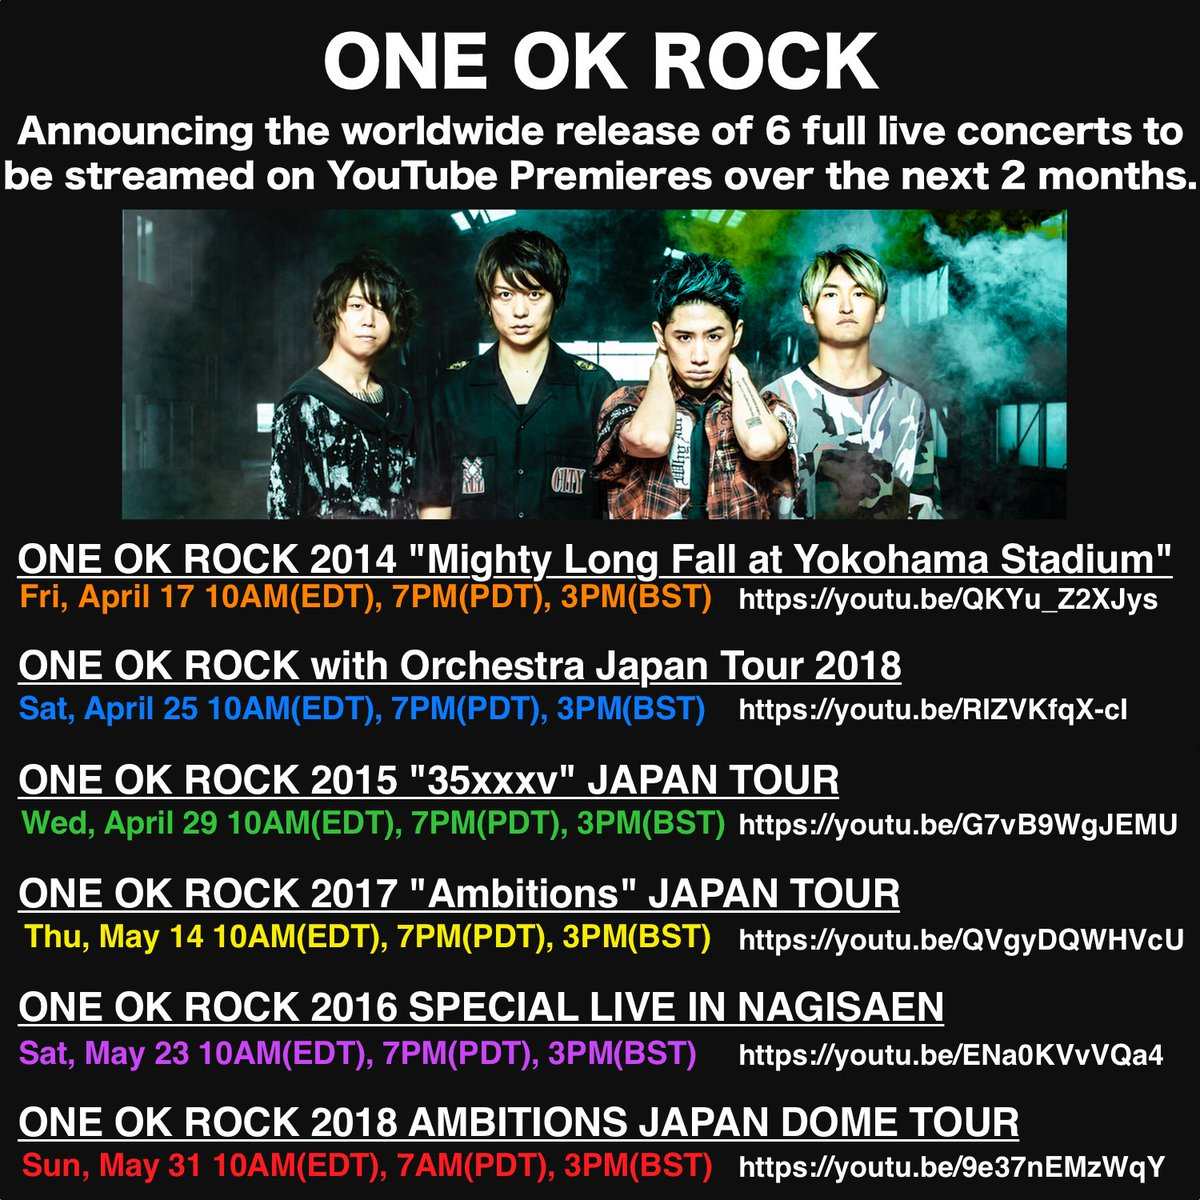 @Loudwire @LoudwireNights *ekhem* 6 past DVD livestream concerts for FREE (plus one additional documentary tour) worth of 380-400 USD, fanbase live tweeting party, and one parody video of their own to give us good and warm laugh~~ 😌